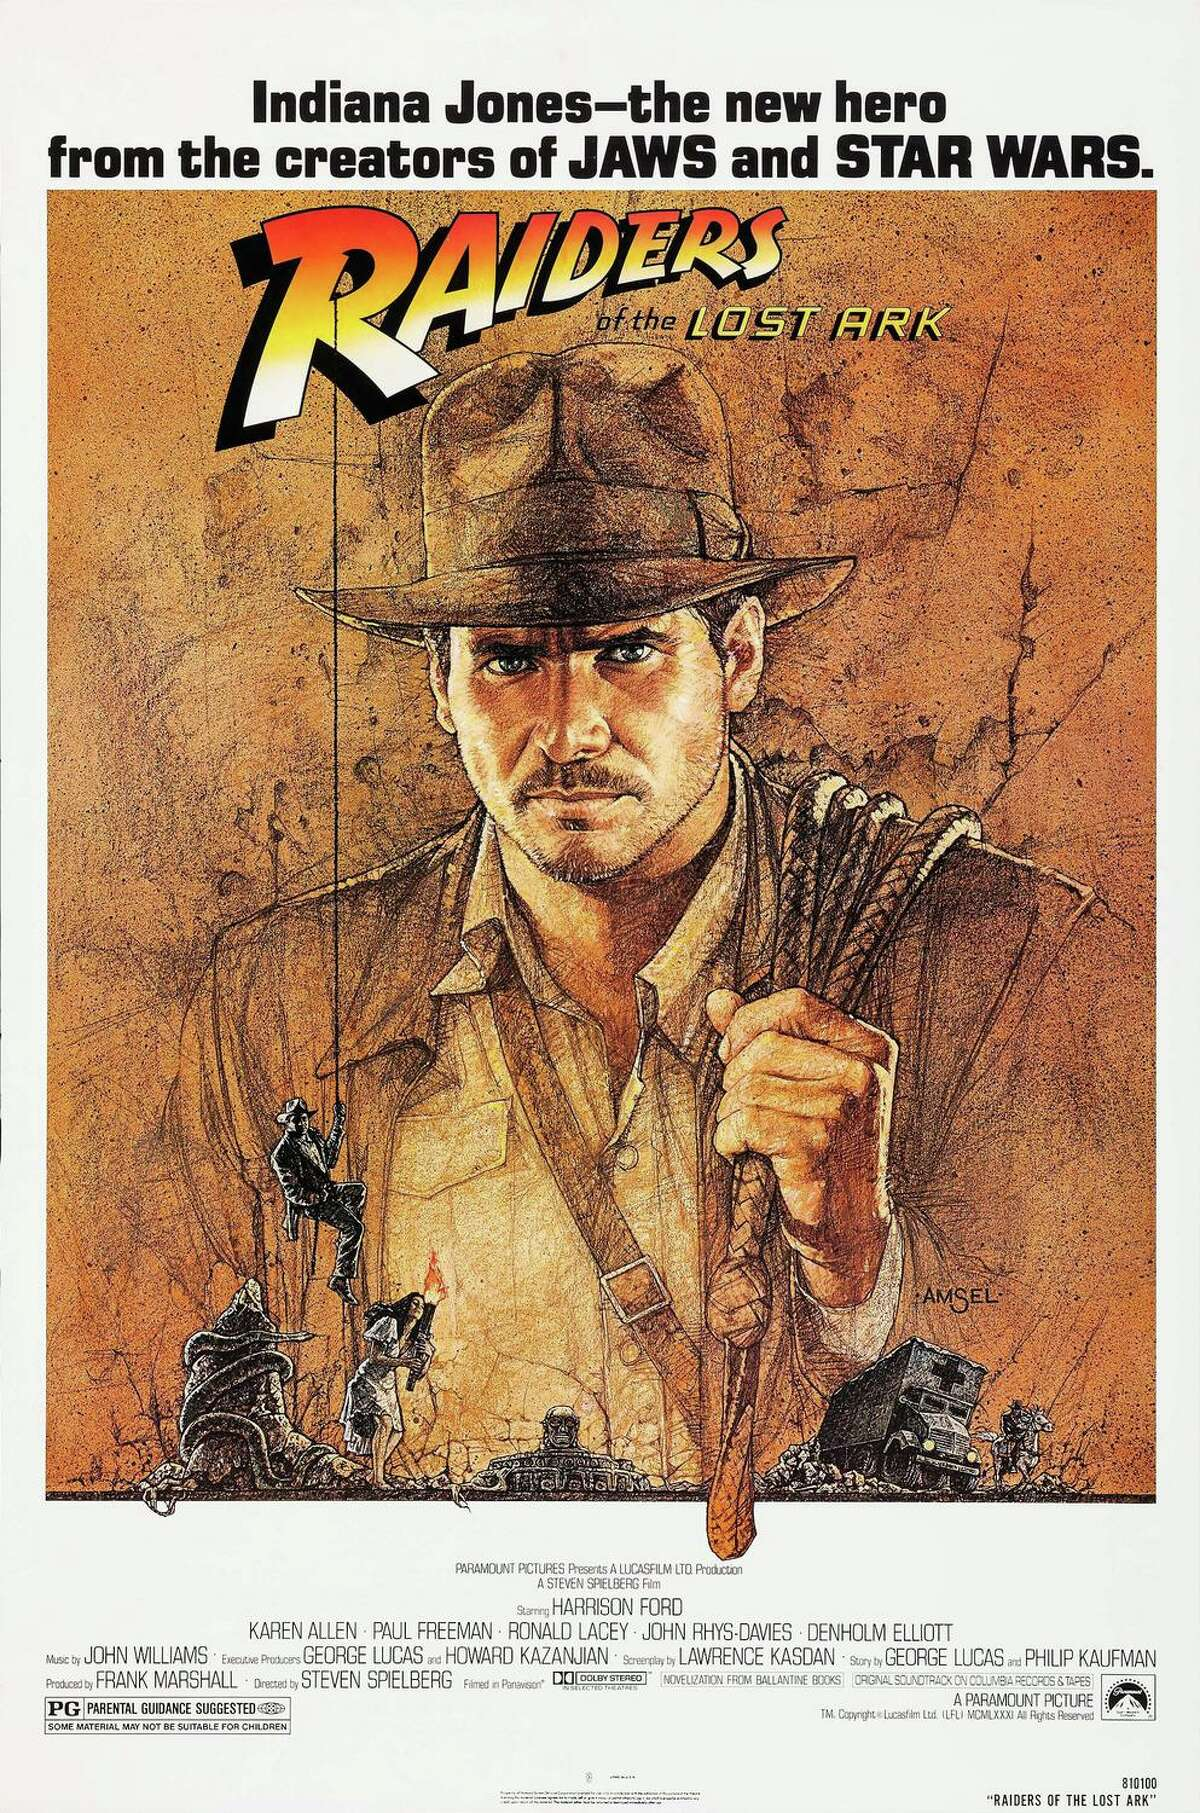 """In 1981, with a couple of hits under his belt, Stephen Spielberg knocked it out of the park with """"Raiders of the Lost Ark,"""" which he says was inspired deeply by the 1948 Bogart classic The Treasure of the Sierra Madre."""